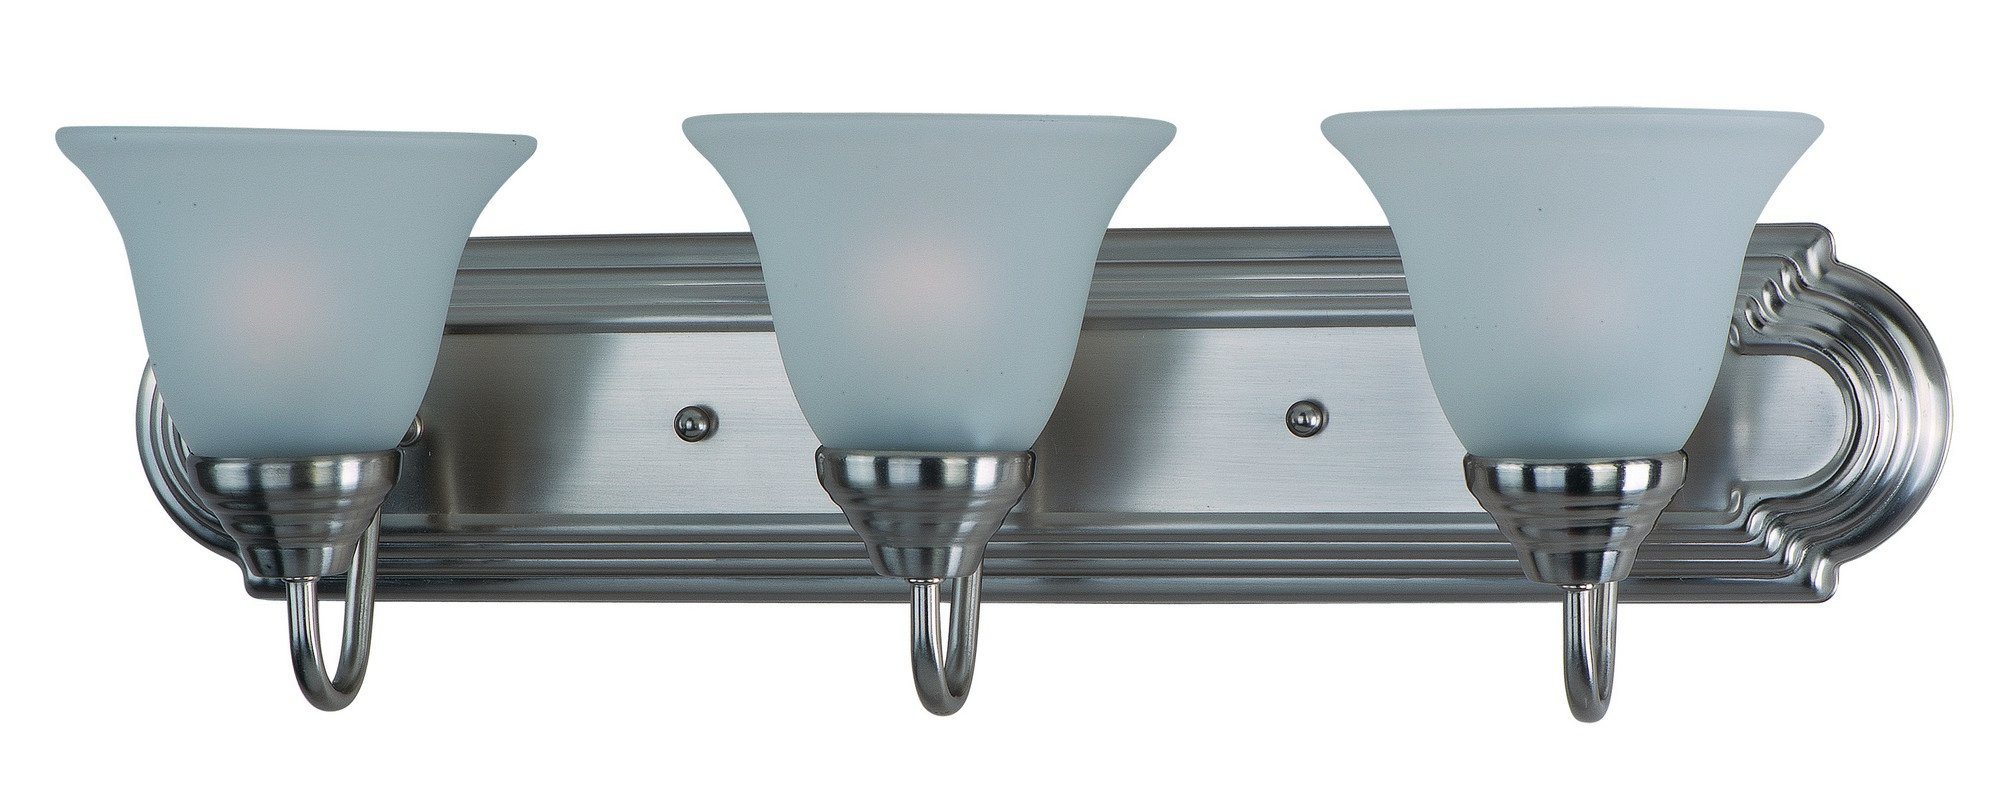 Maxim 8013FTSN Essentials 3-Light Bath Vanity, Satin Nickel Finish, Frosted Glass, MB Incandescent Incandescent Bulb , 60W Max., Dry Safety Rating, Standard Dimmable, Metal Shade Material, Rated Lumens